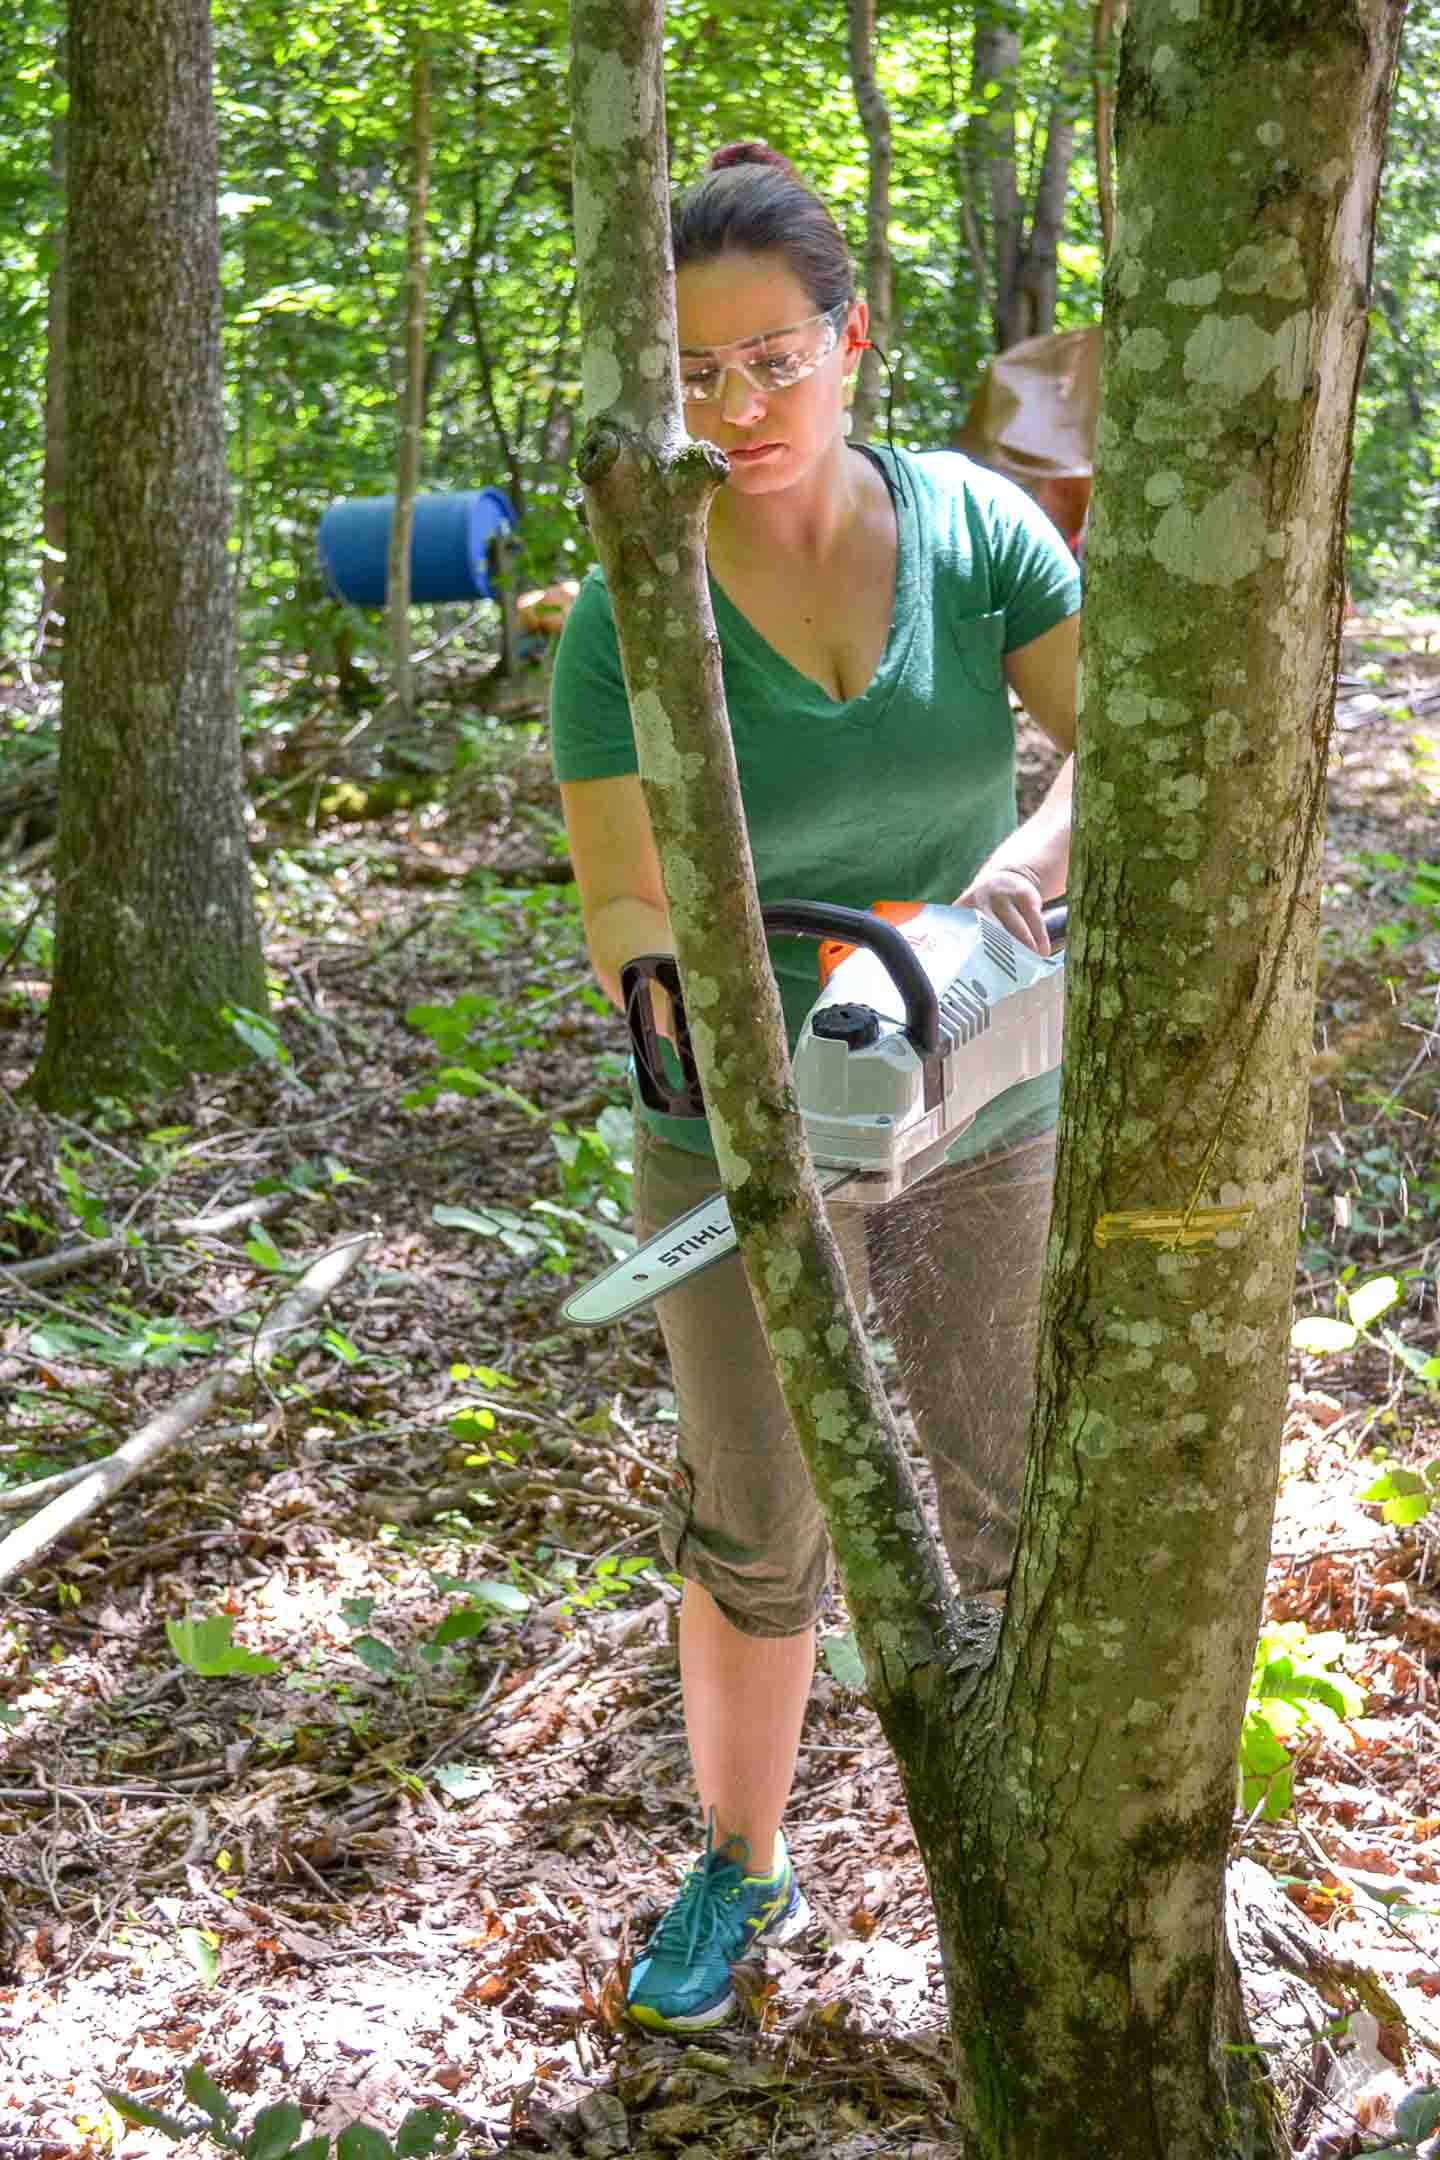 Me trying out my first cut on a tree with STIHL chainsaw